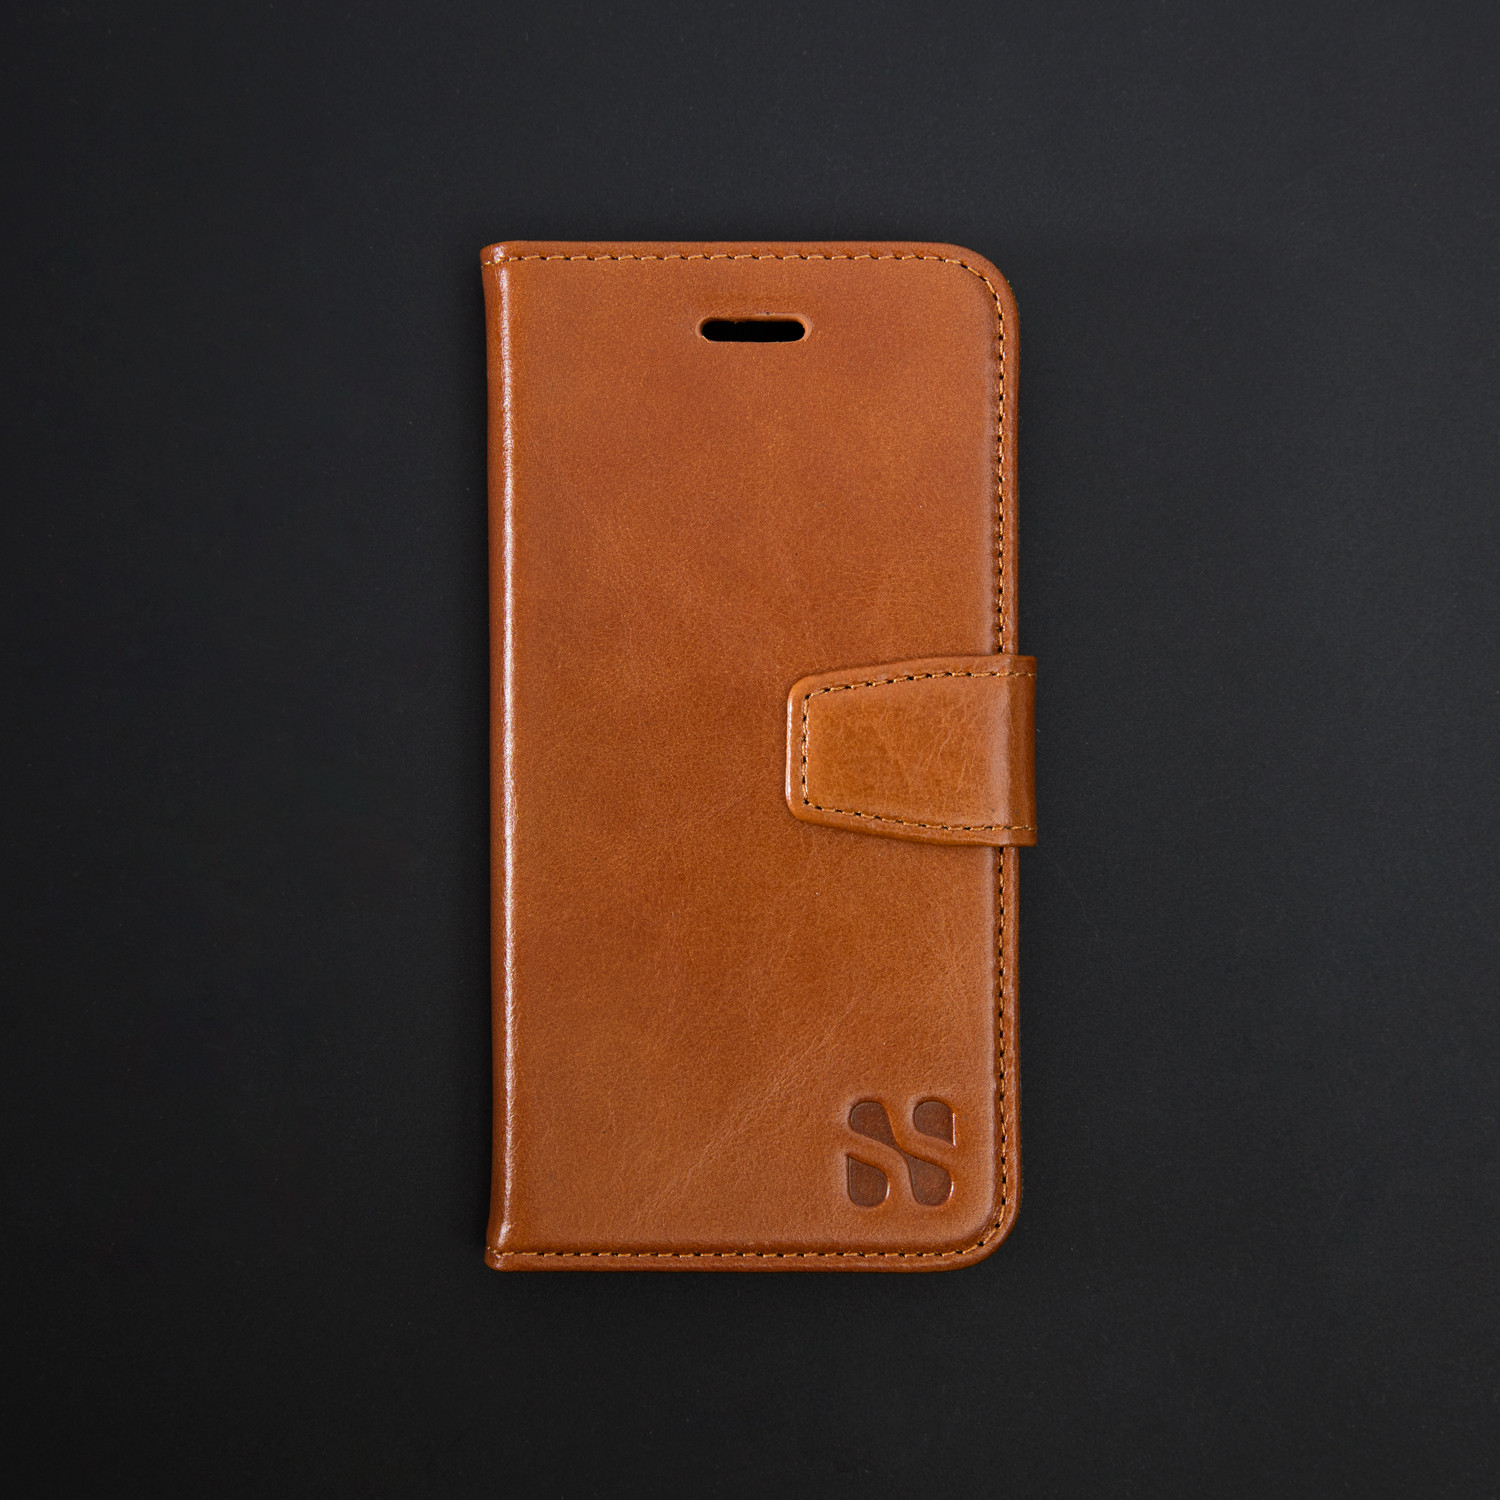 new arrival ea33f ae3a9 SafeSleeve Wallet Case // Tan Leather (iPhone 6/6s) - Safe Sleeve ...